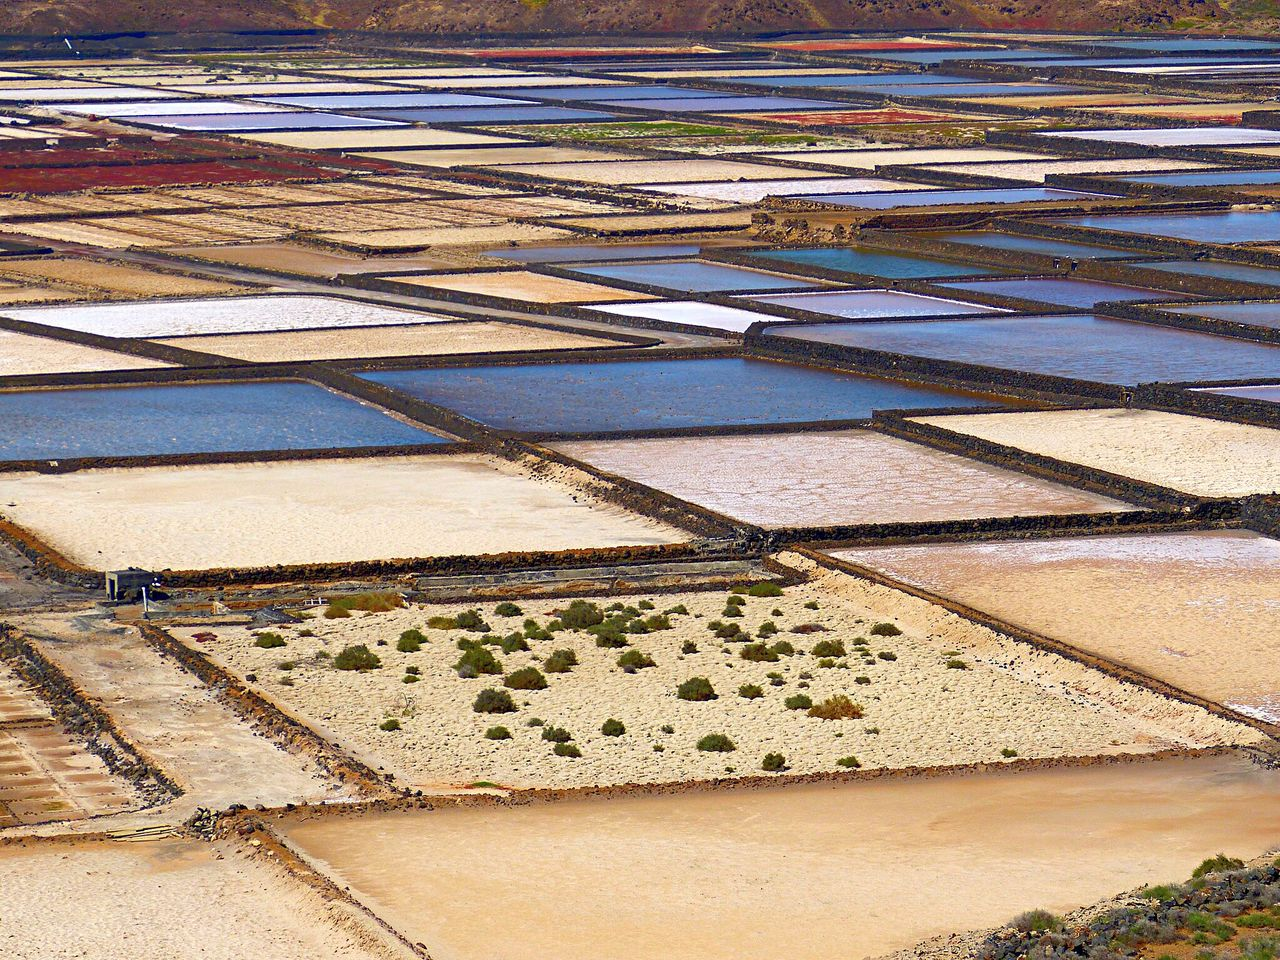 agriculture, salt - mineral, salt flat, salt basin, water, nature, outdoors, day, full frame, tranquility, beauty in nature, no people, irrigation equipment